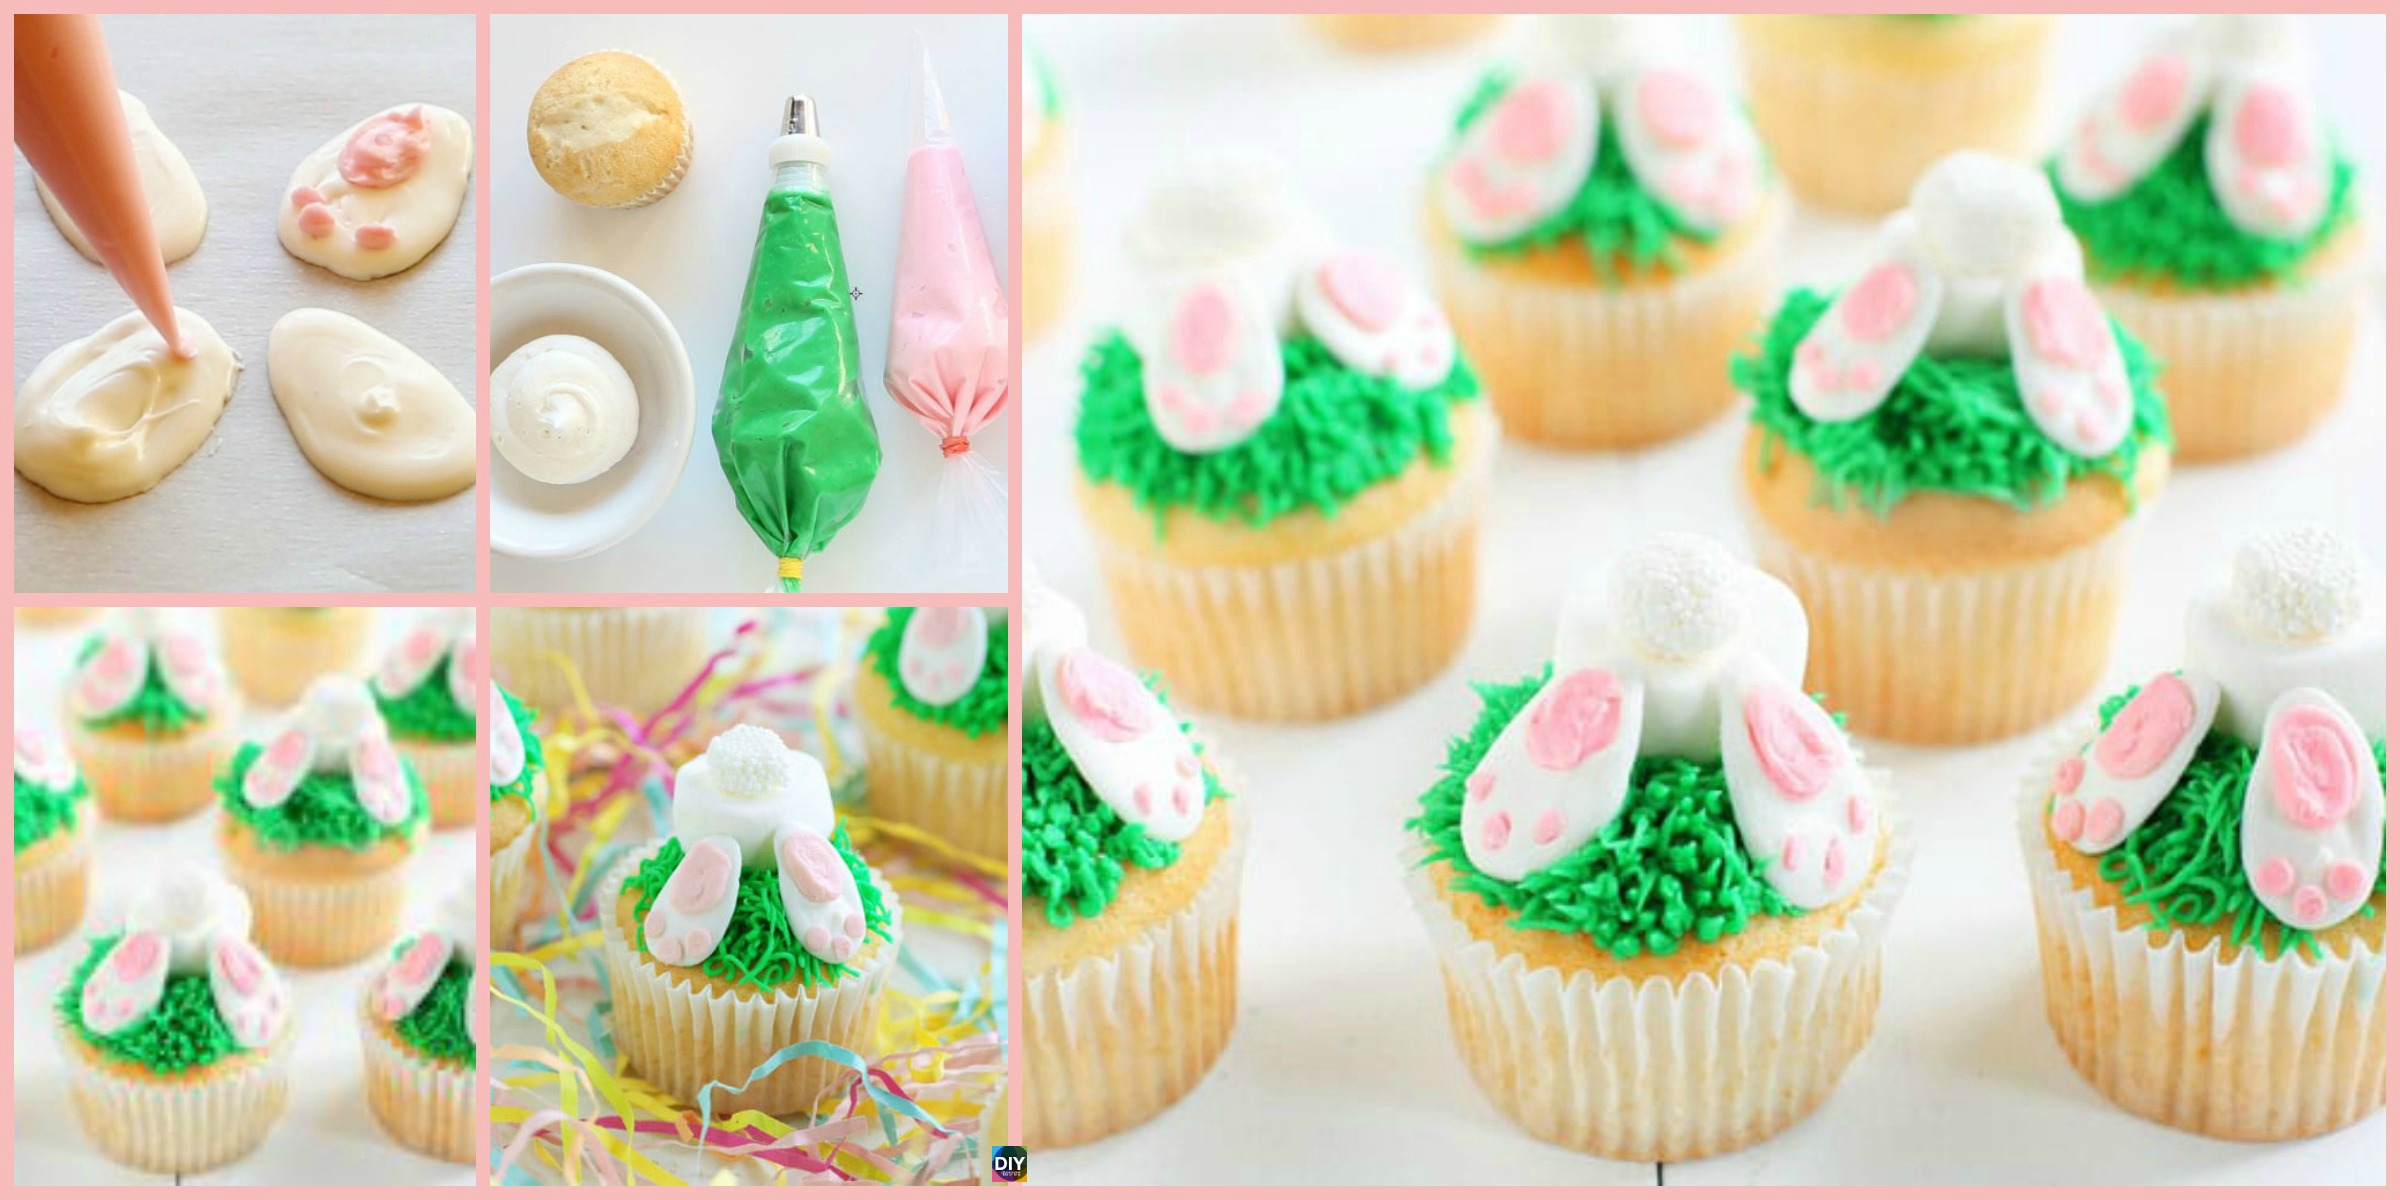 Adorable DIY Bunny Butt Cupcakes Recipe